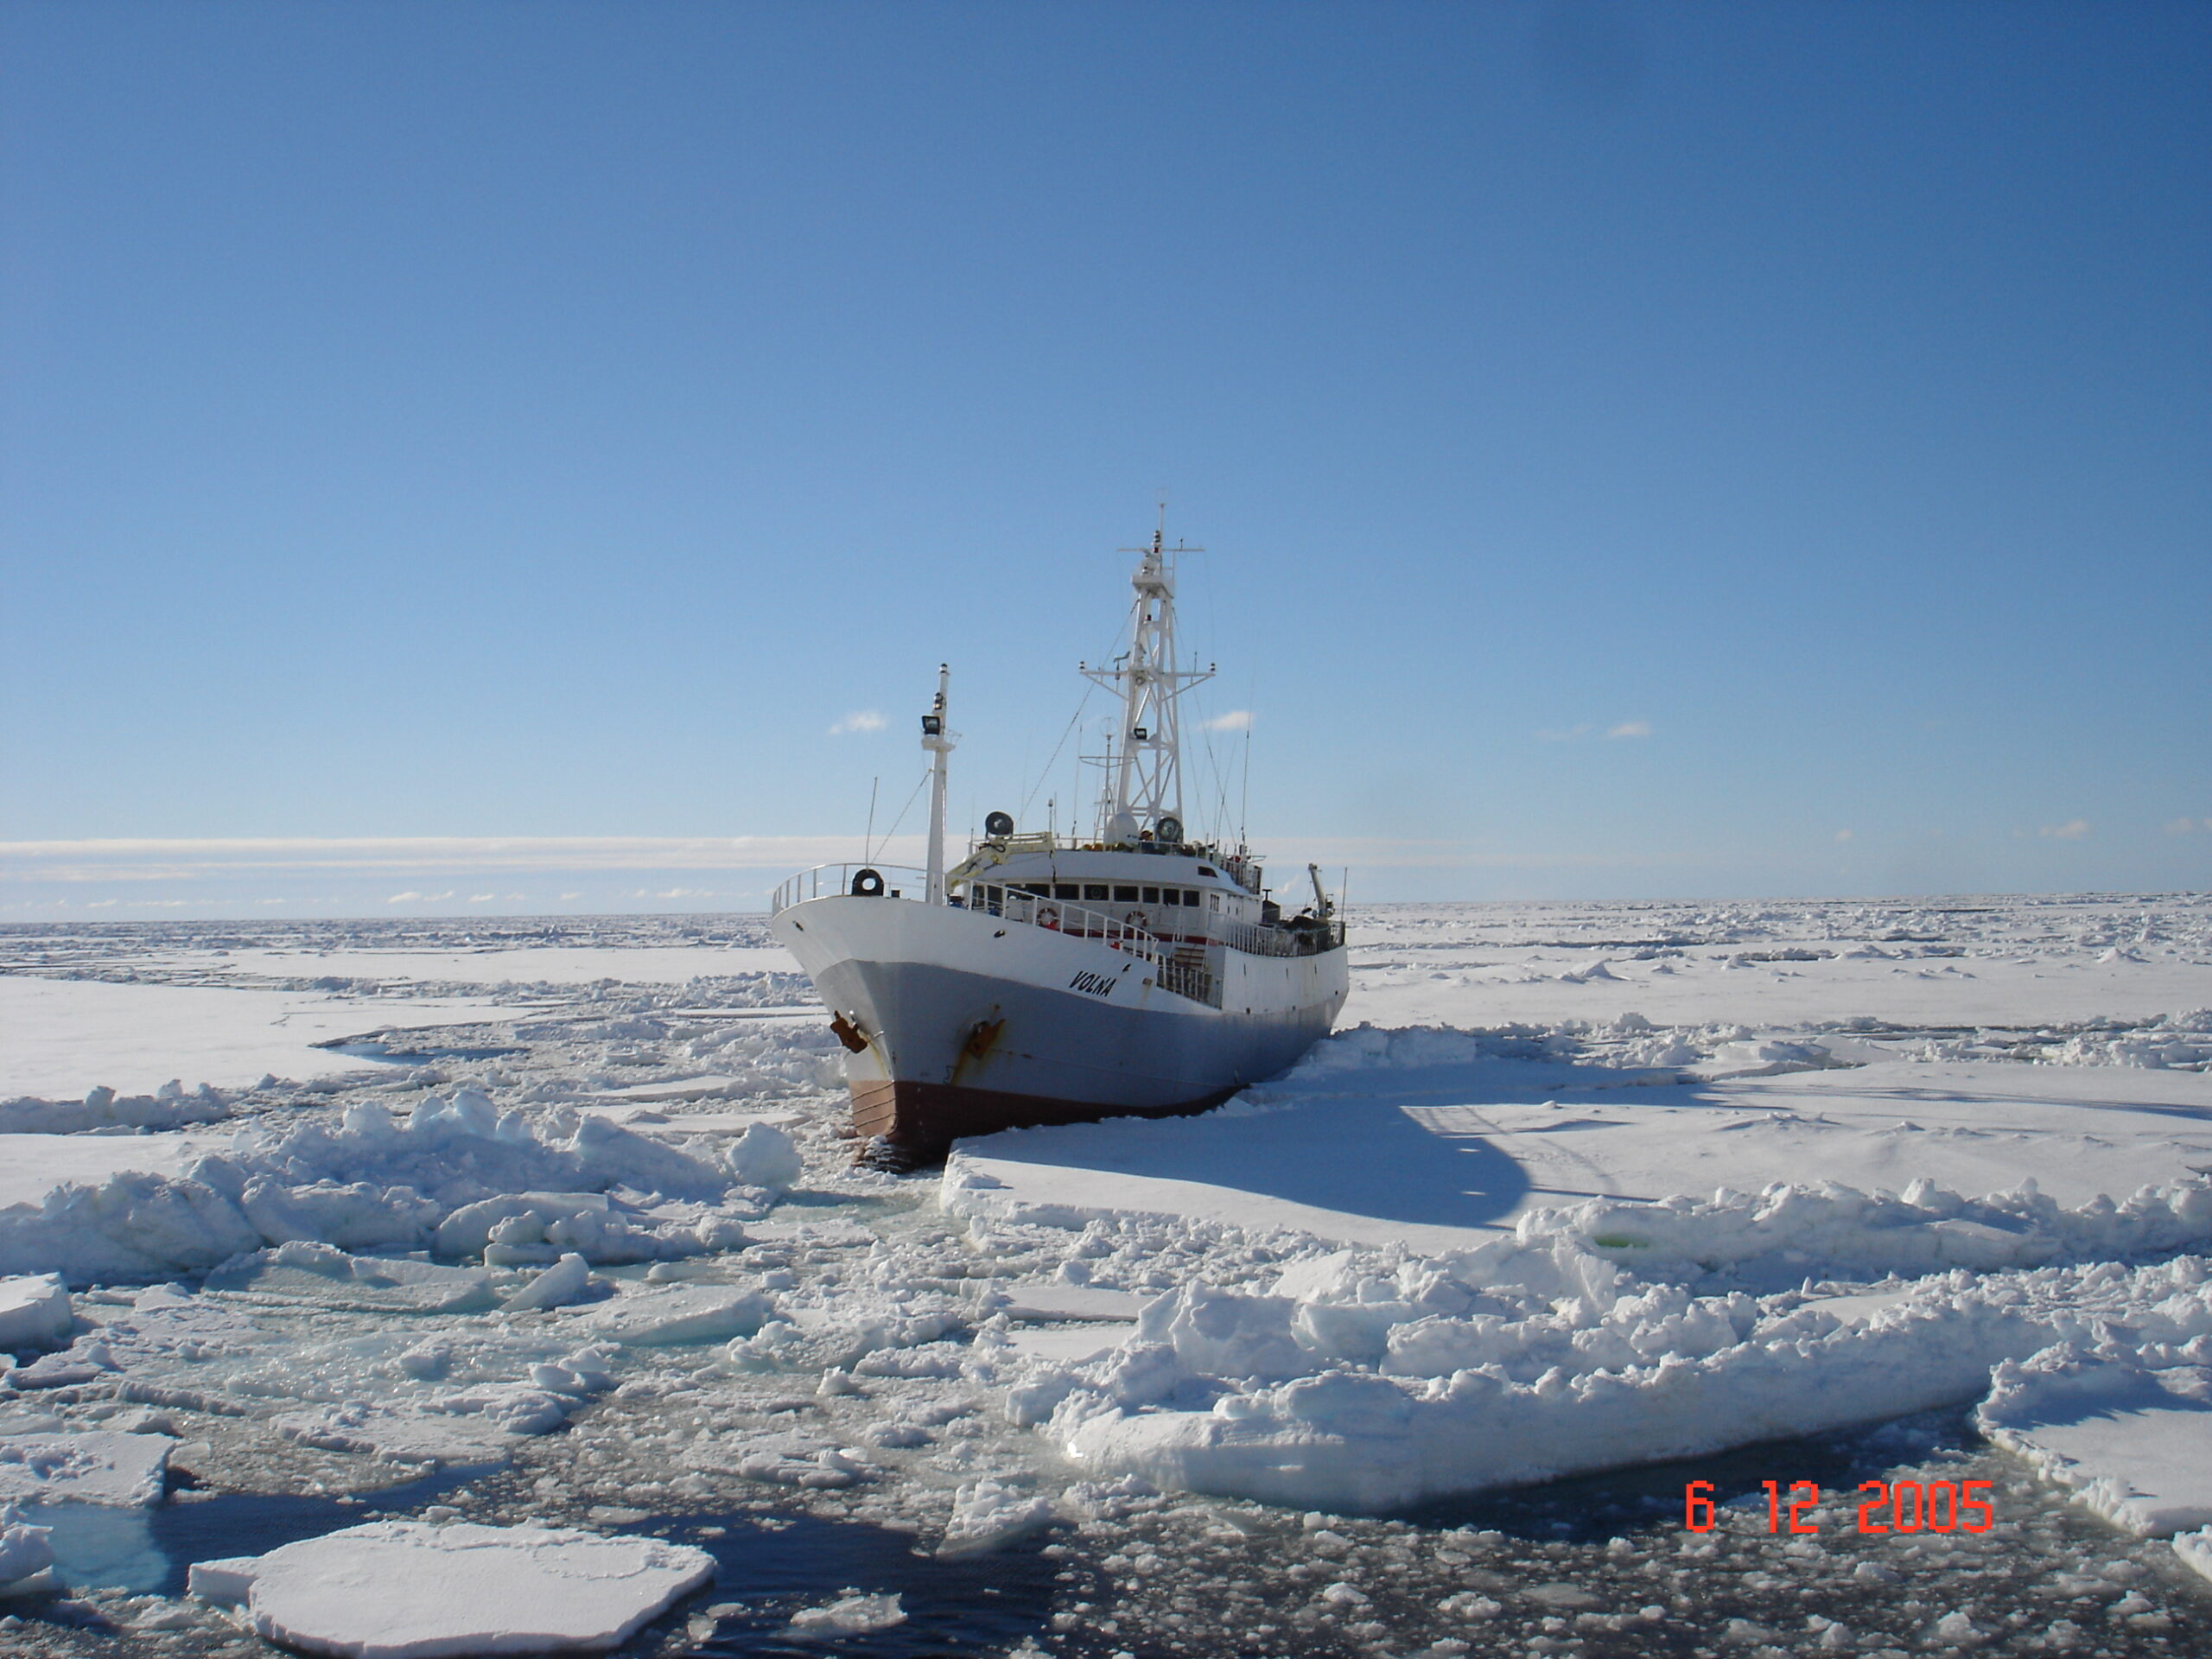 Picture of a fishing vessel